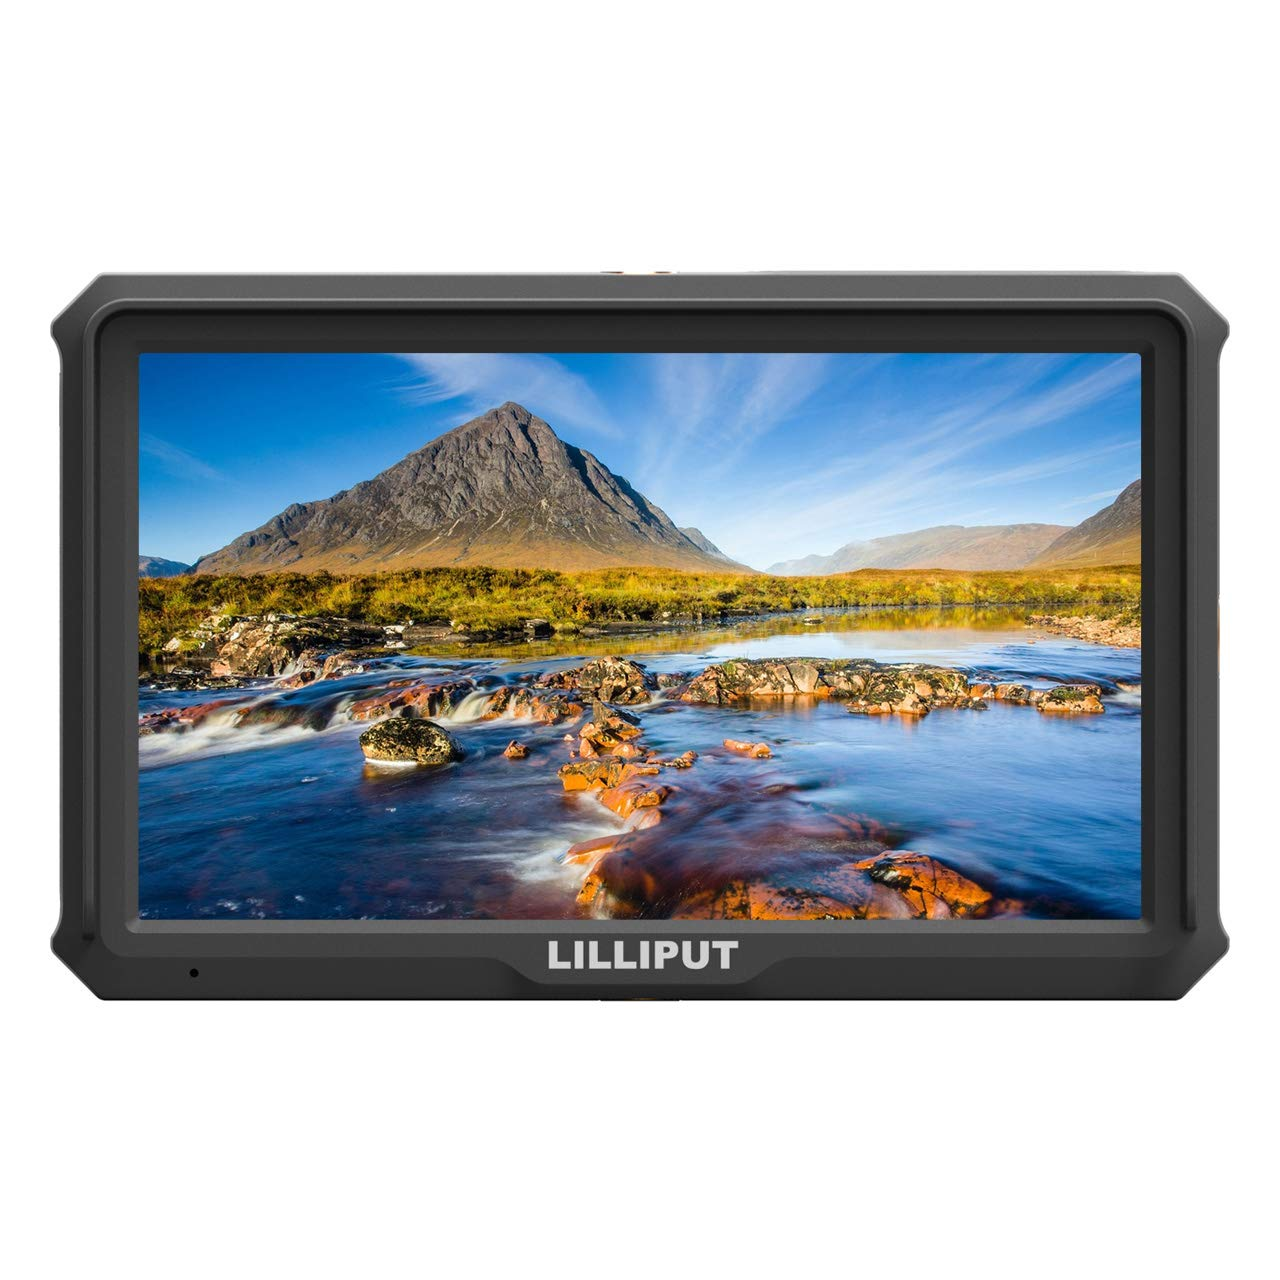 Lilliput A5 5 inch 1920x1080 HD 441ppi IPS DSLR Screen Camera Field Monitor 4K HDMI Input Output Compatible with Canon Nikon A7 A7S III A9 Panasonic GH5 GH5s Zhiyun Crane 2 M TILTA G2X DJI Ronin-S by Lilliput (Image #8)